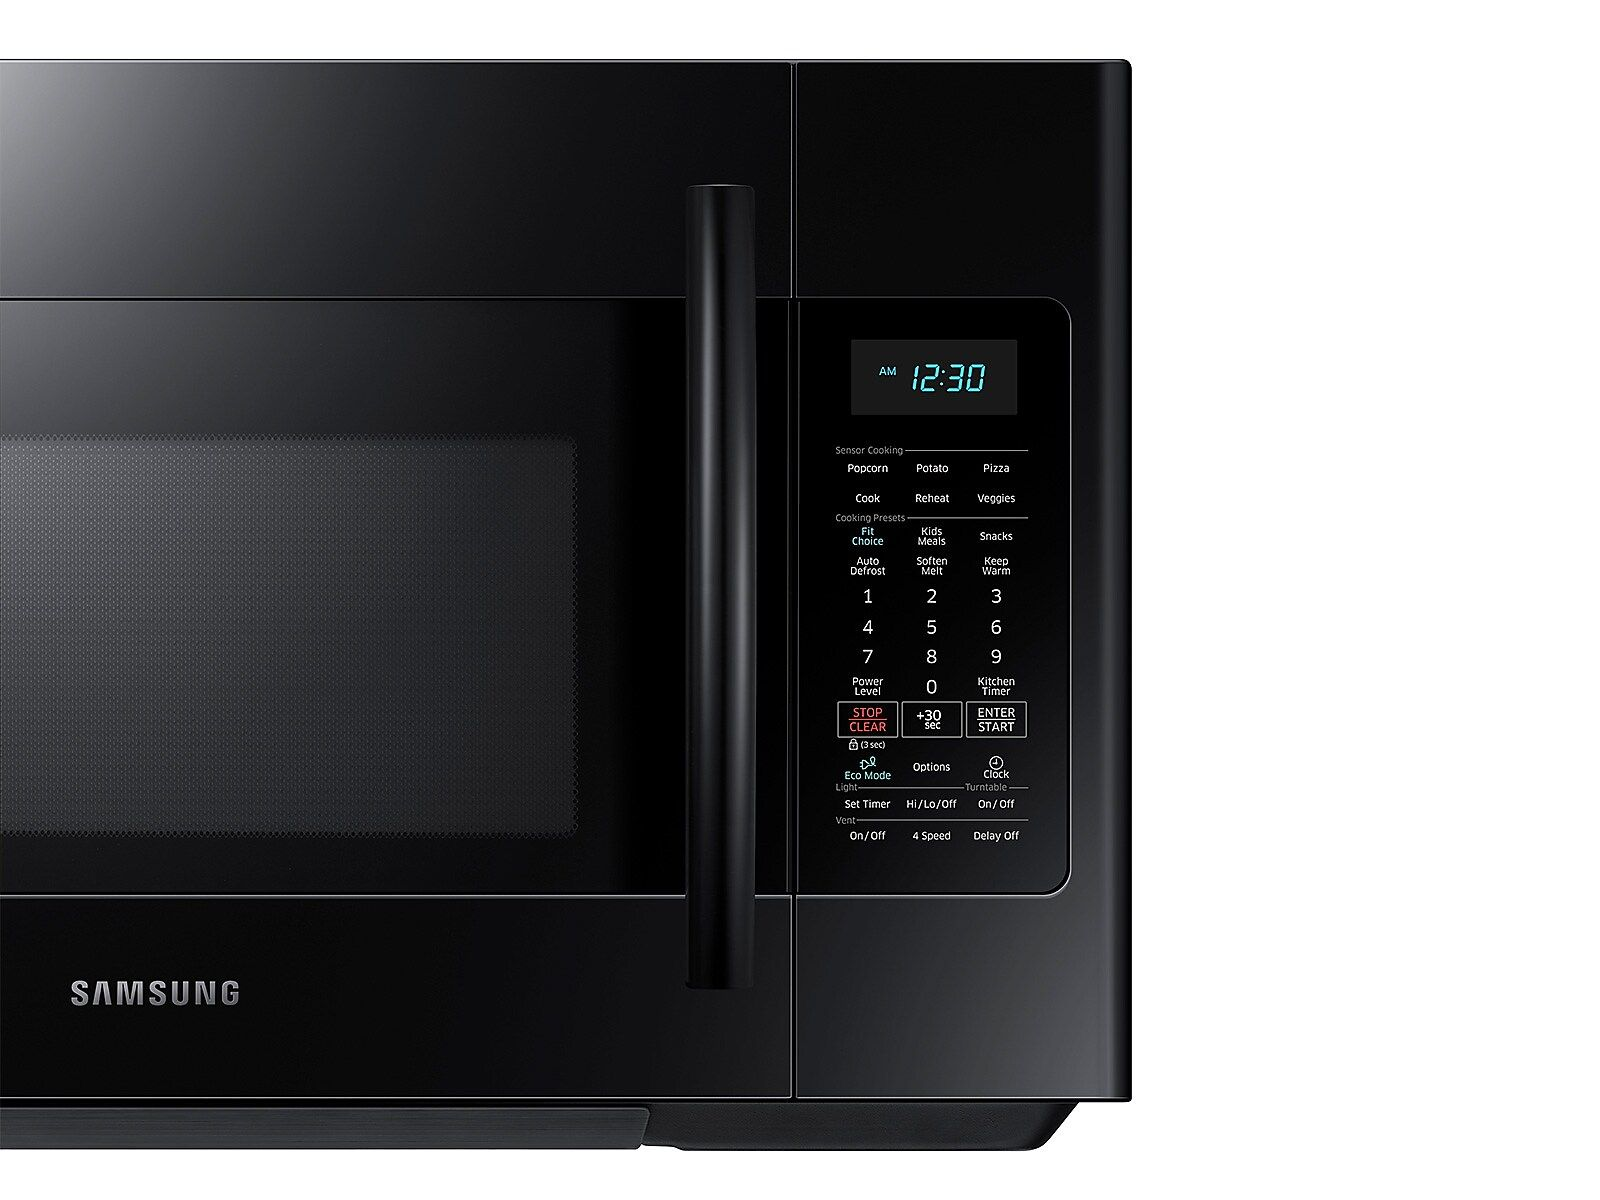 Samsung 1 8 Cu Ft Over The Range Microwave With Sensor